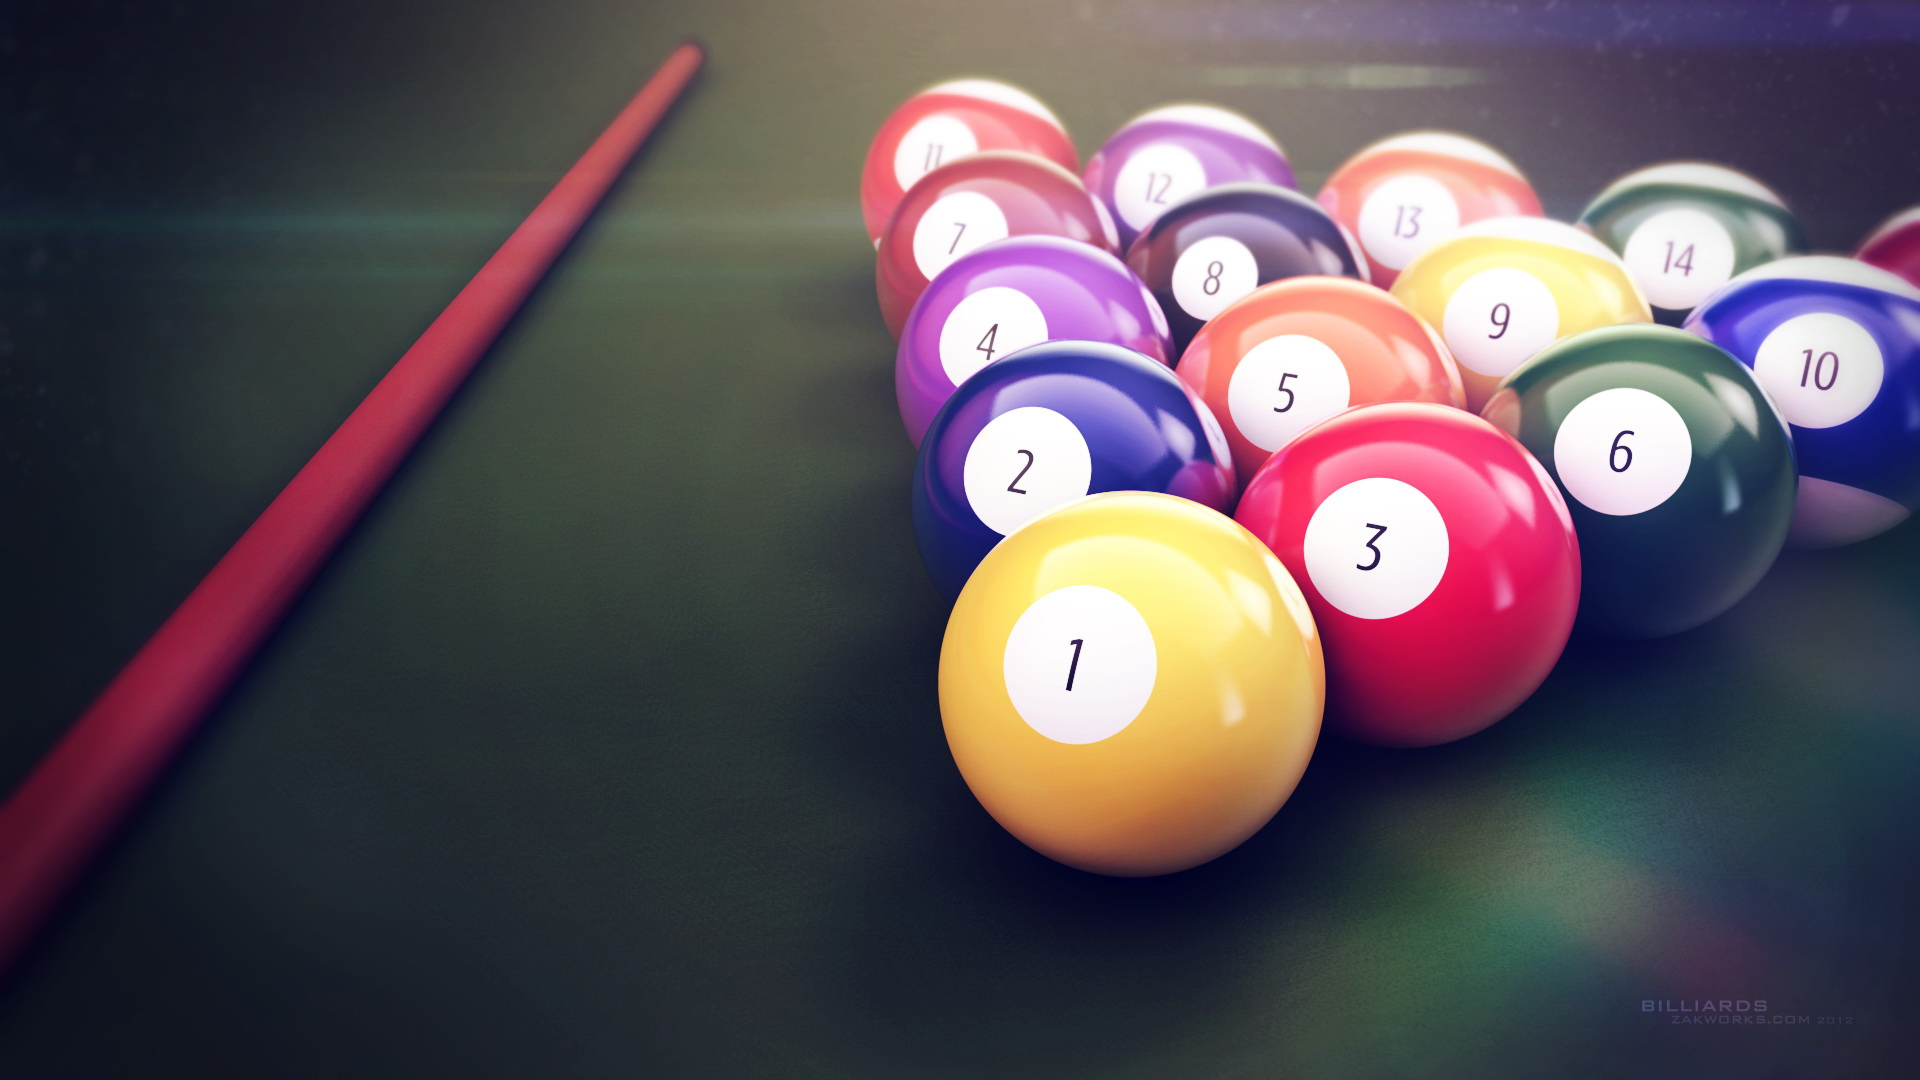 Billiards 188.85 Kb